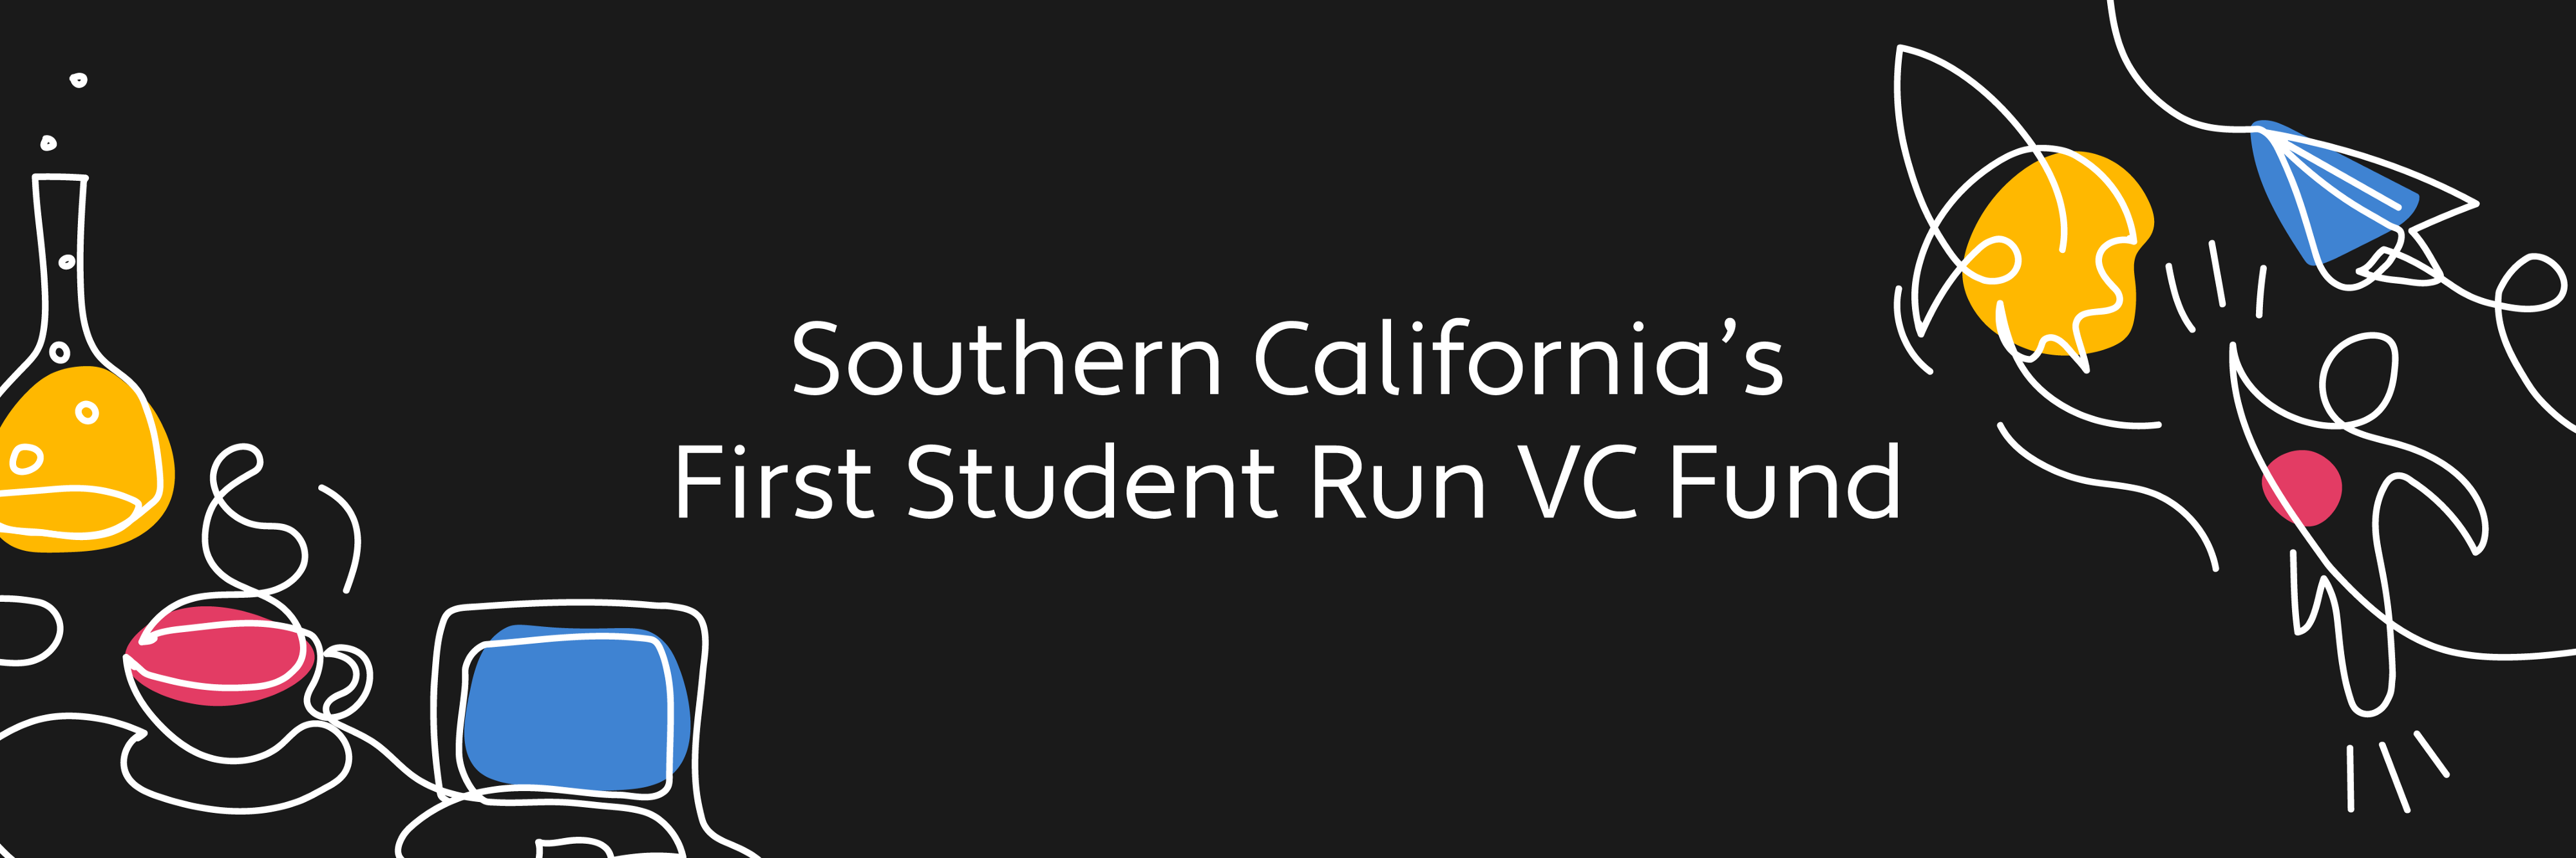 California Crescent Fund is Southern California's first student VC fund